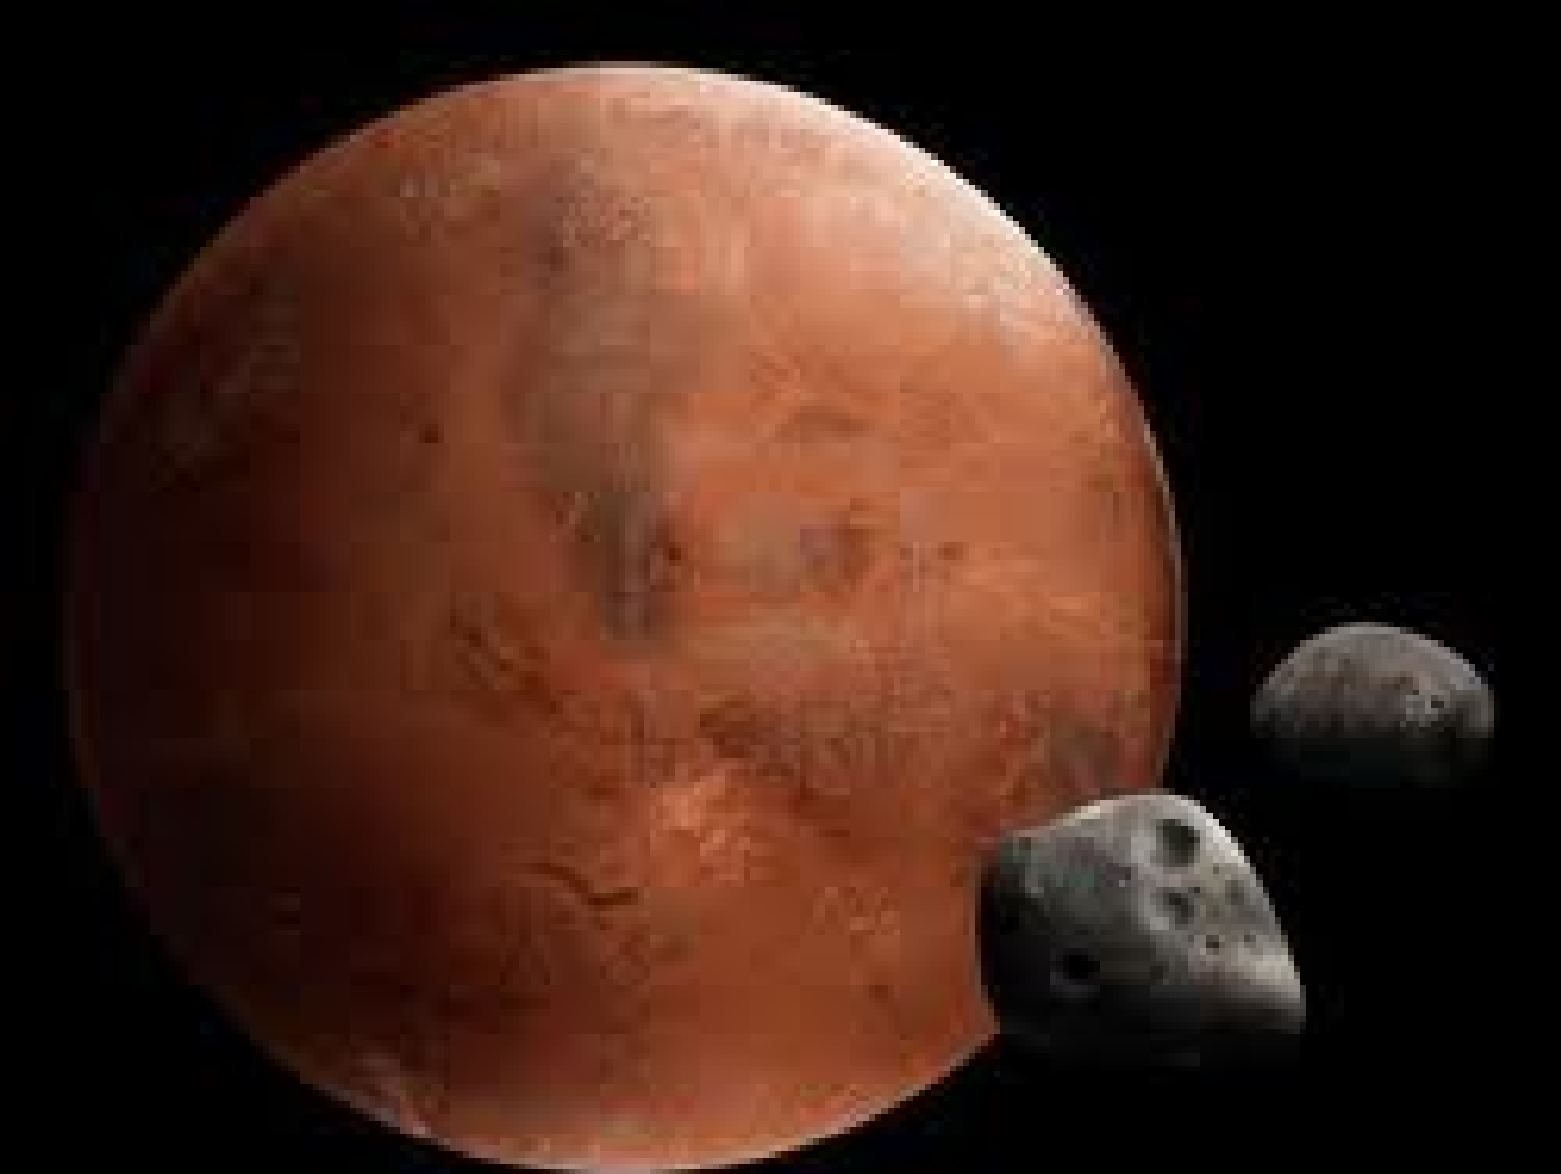 from mars moons phobos and deimos - photo #25